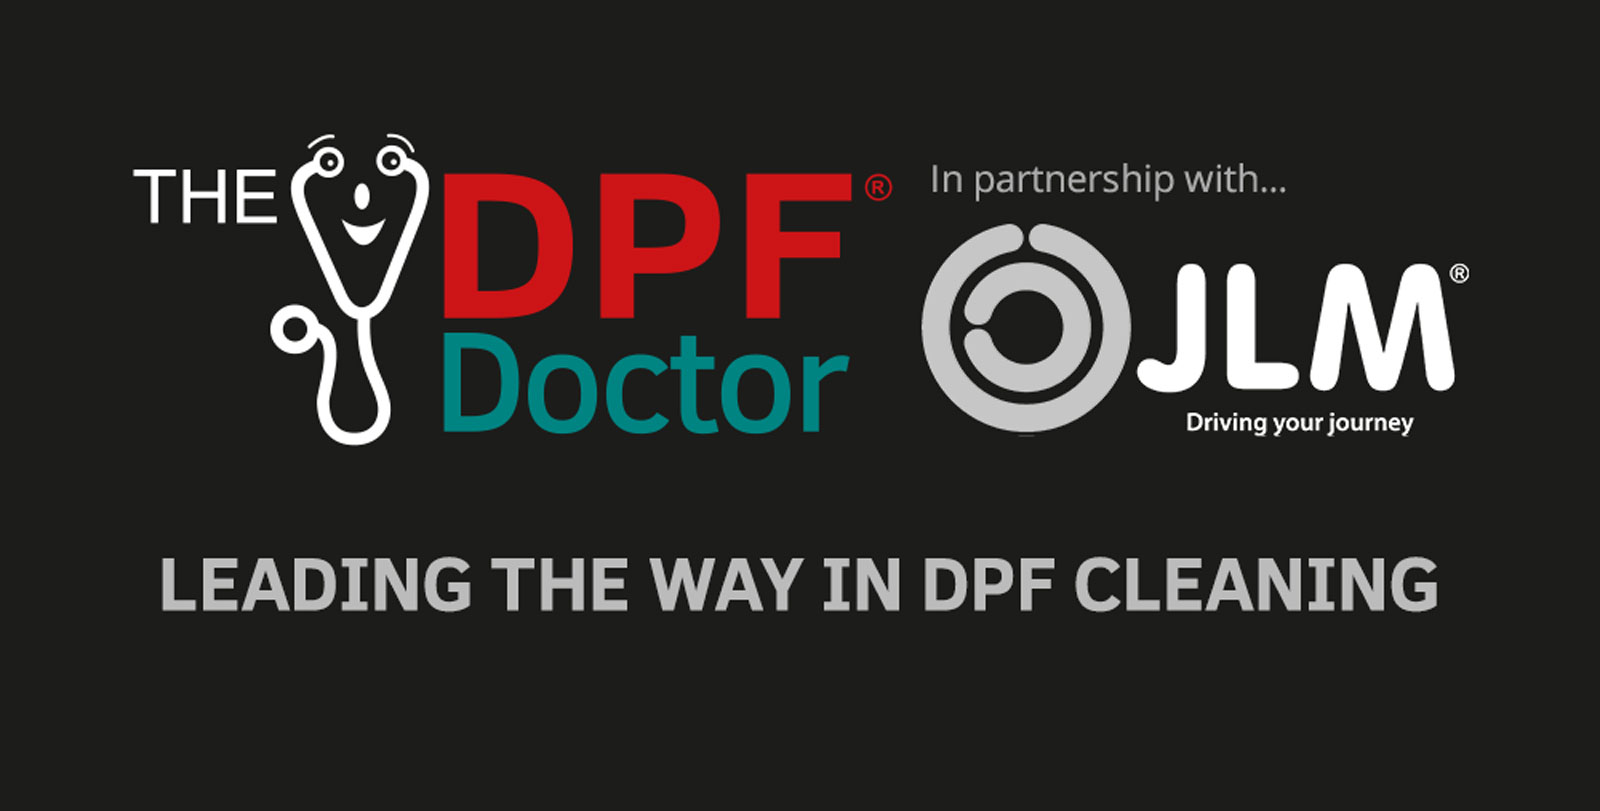 dpf cleaning companies